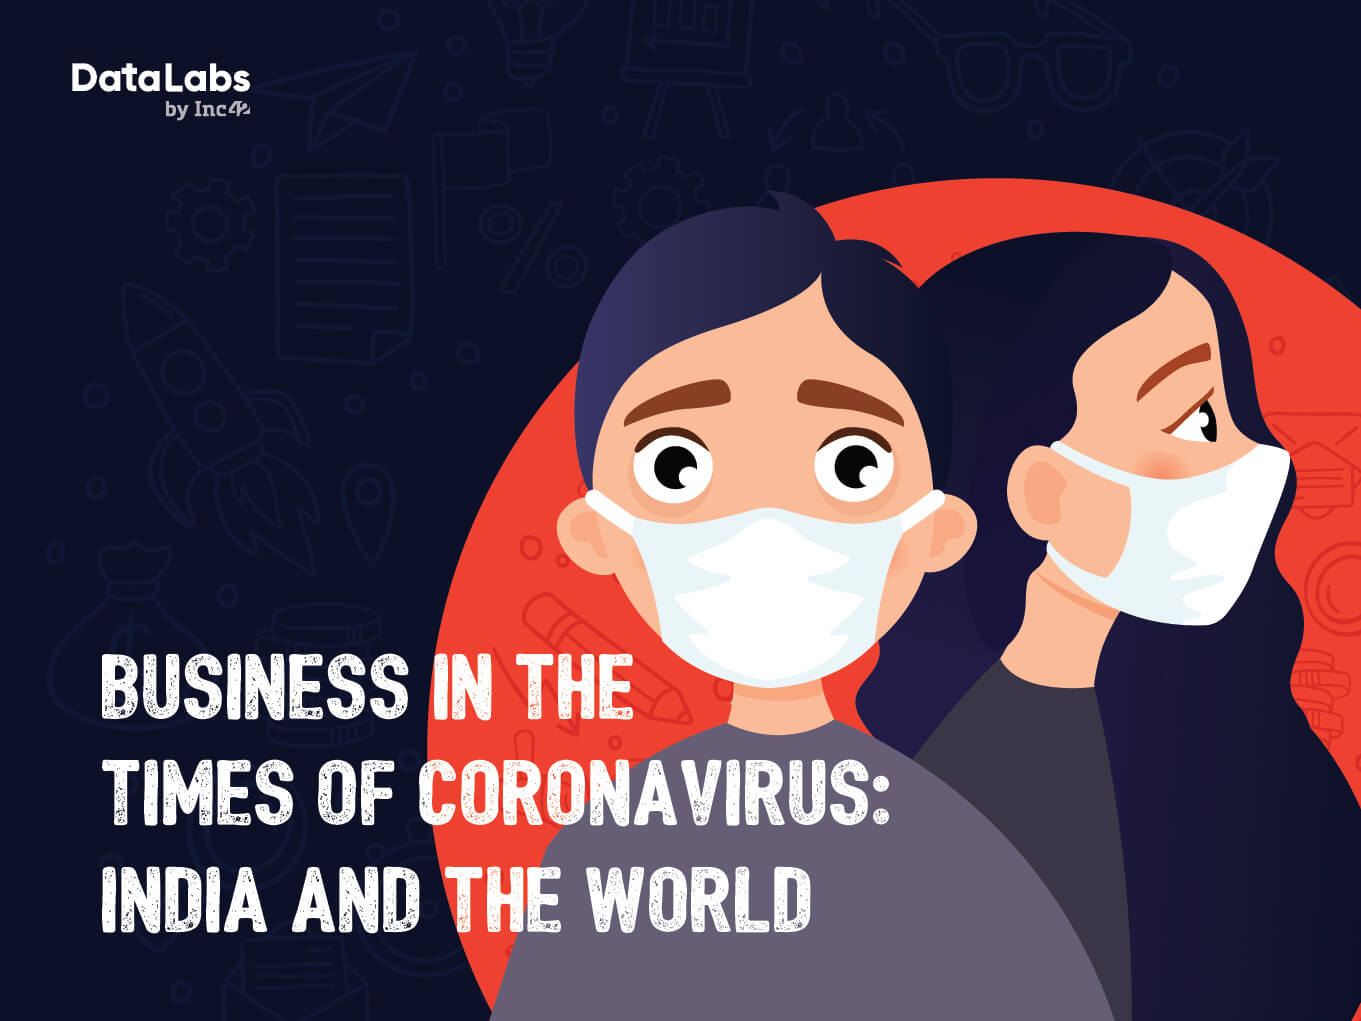 Coronavirus impact on business